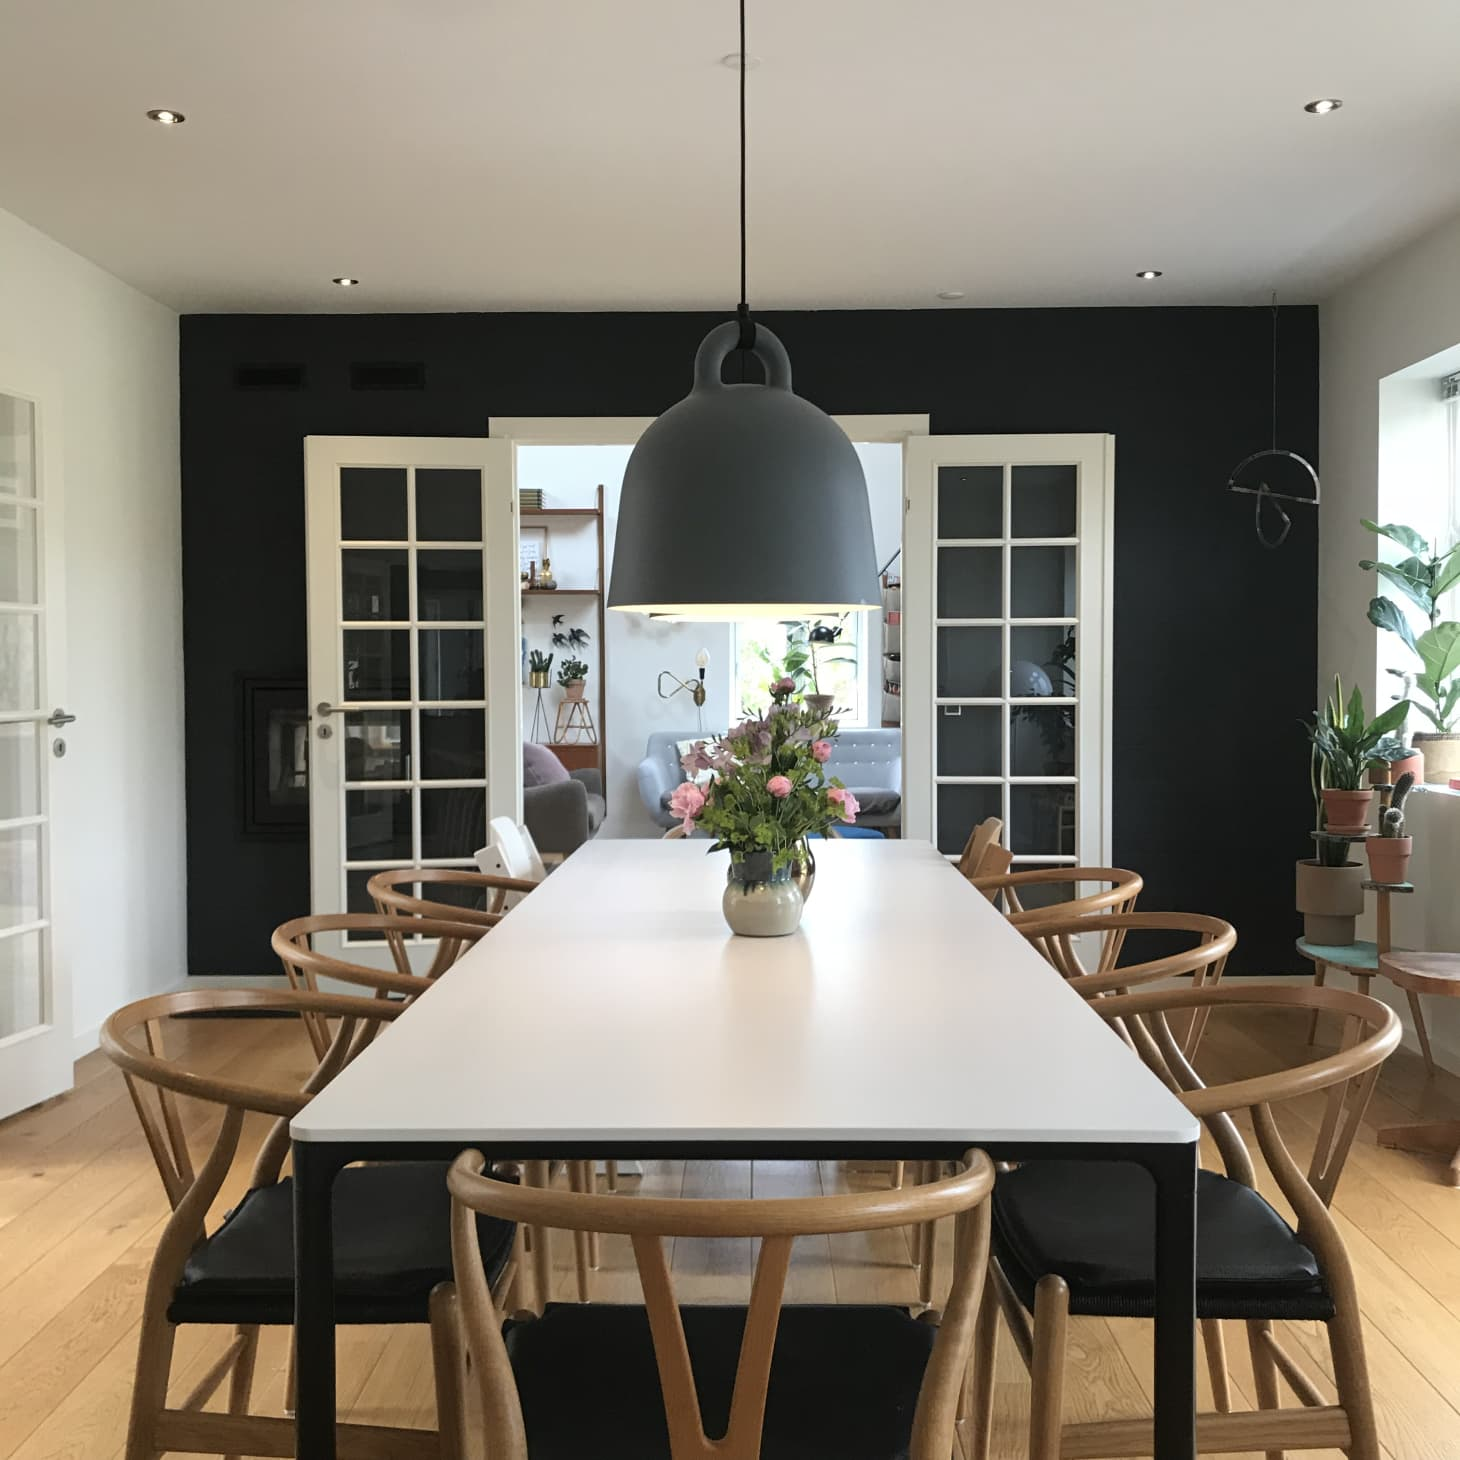 Danish Home Design Ideas: The Rules Of Scandinavian Design, According To Experts